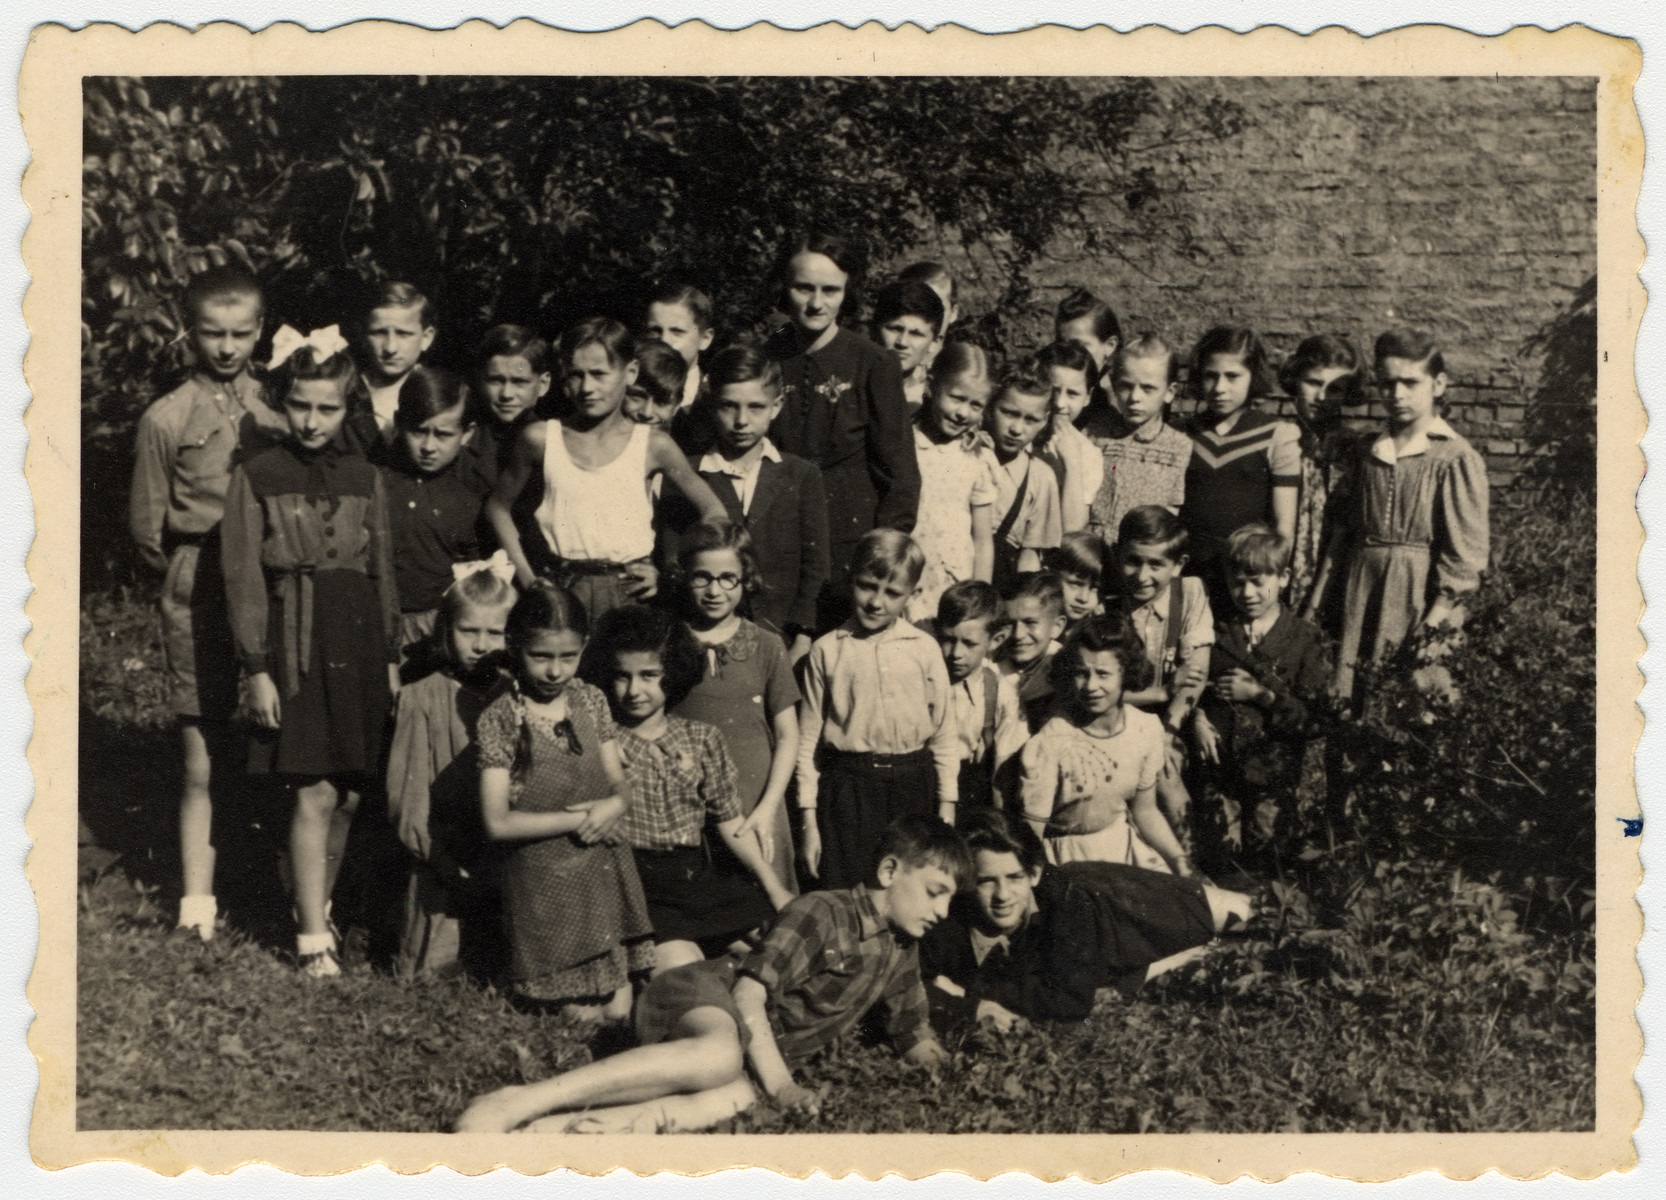 Group portrait of a fourth or fifth grade class in Bielsko Biala.  Among them are approximately eight Jewish orphans from a nearby children's home.  Among those pictured is Irena Ceder standing third from the right.